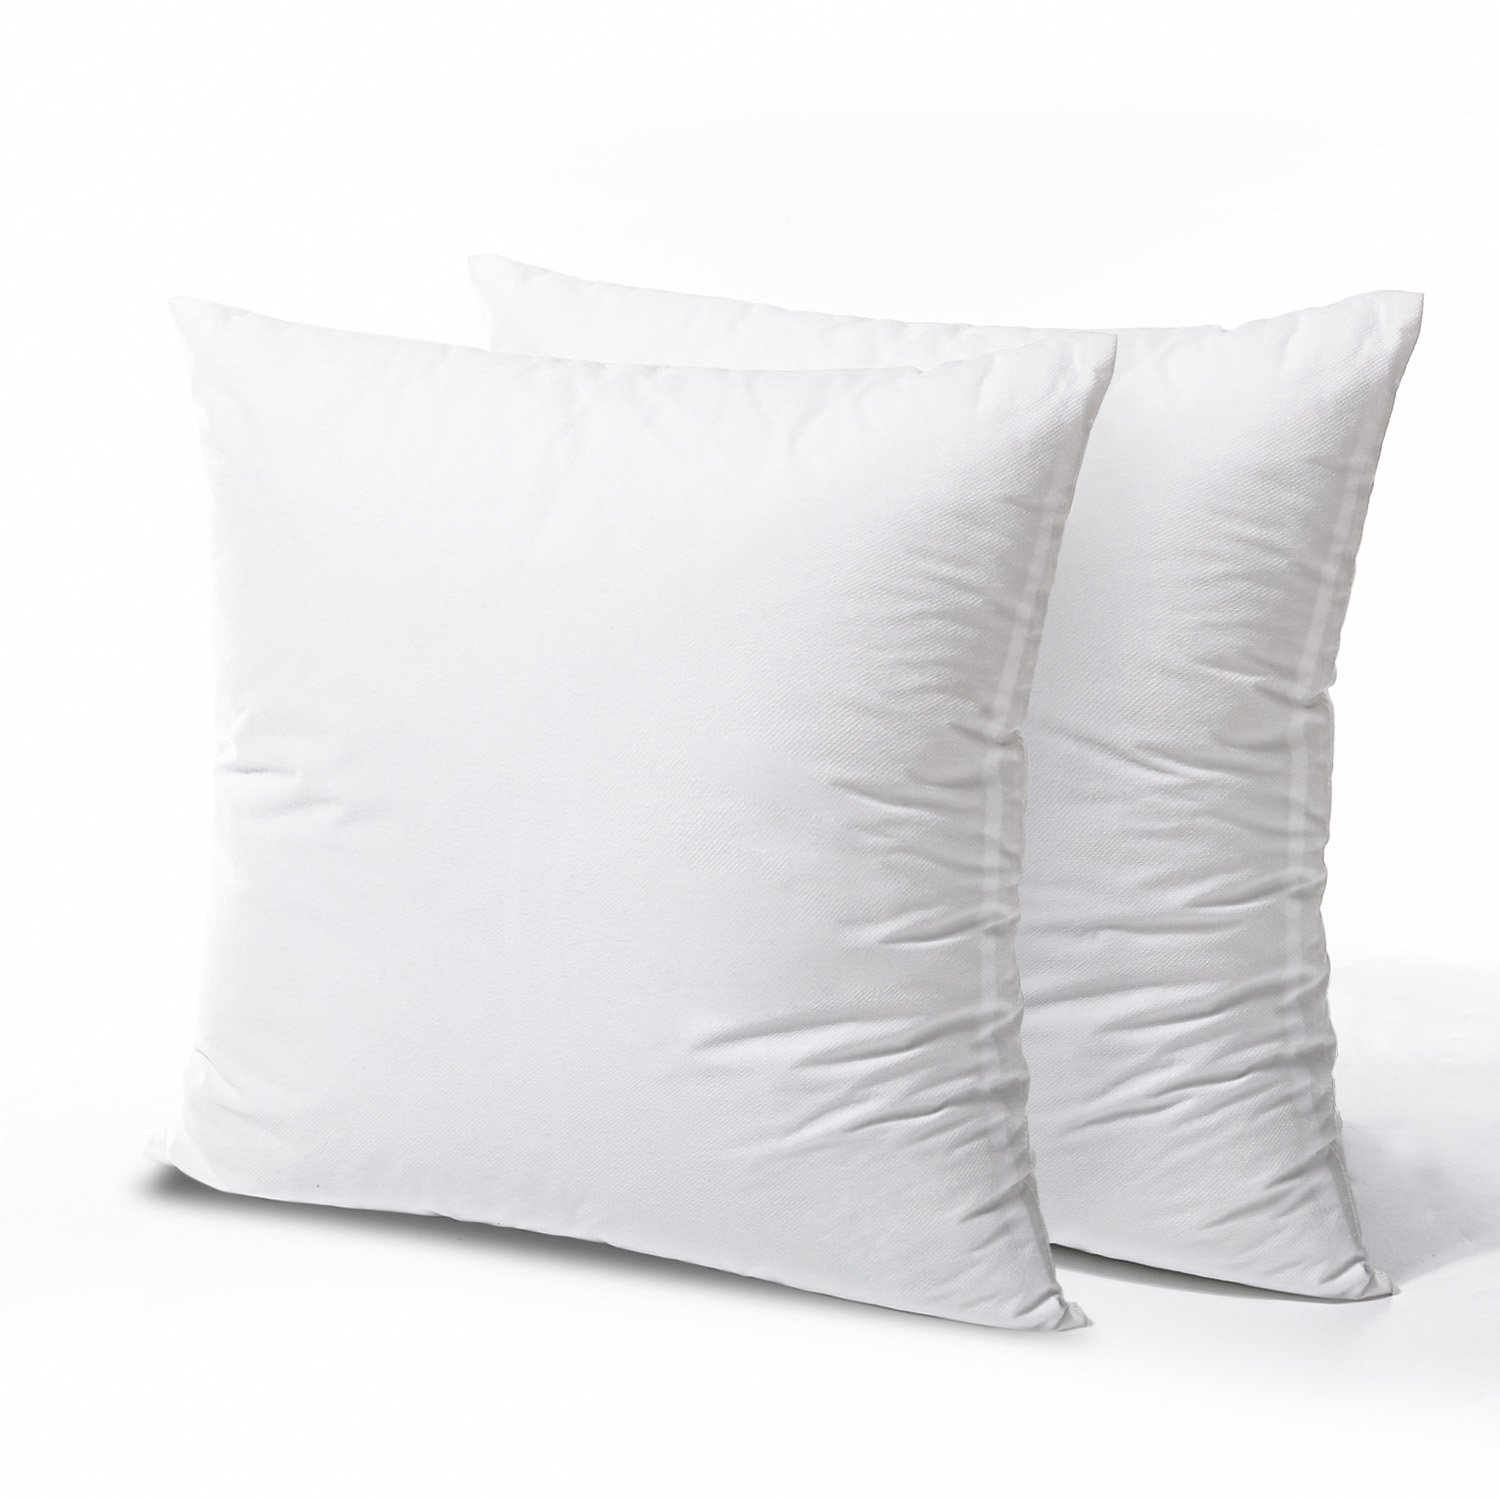 phantoscope hypoallergenic square form decorative throw pillow insert couch sham cusion stuffer 22 x 22 2 pack